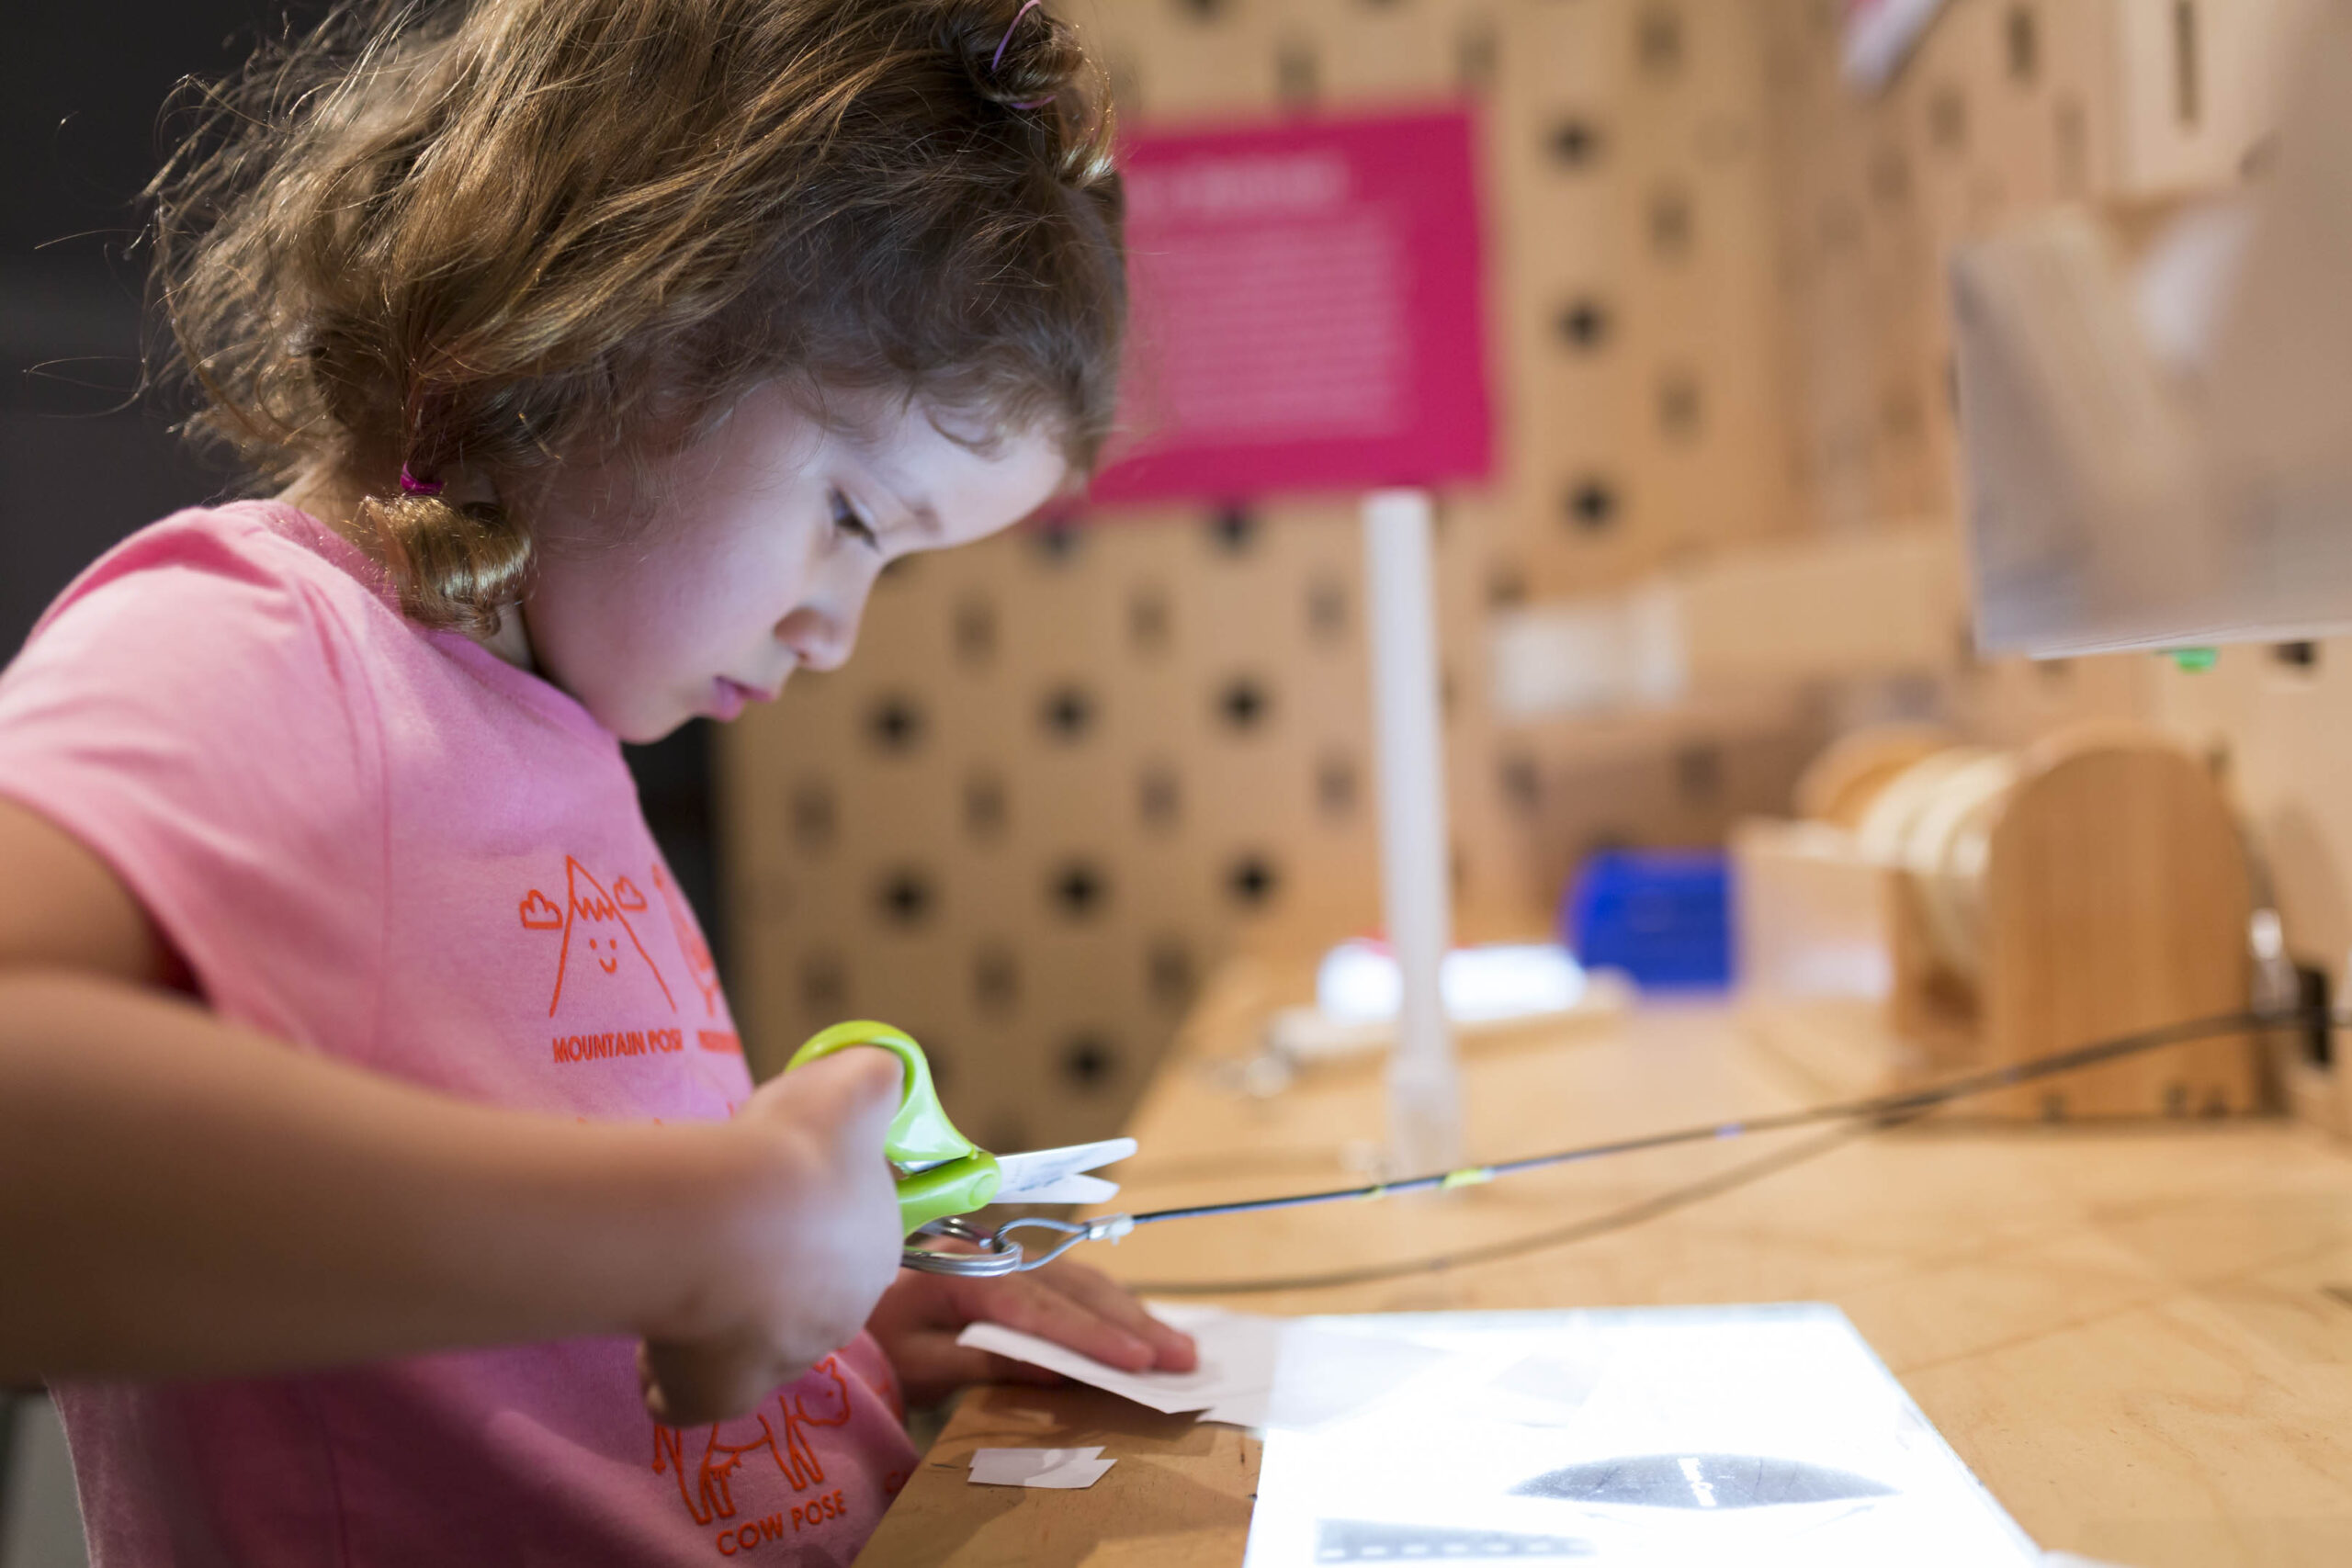 A child creating her own invention at the Make Station exhibit